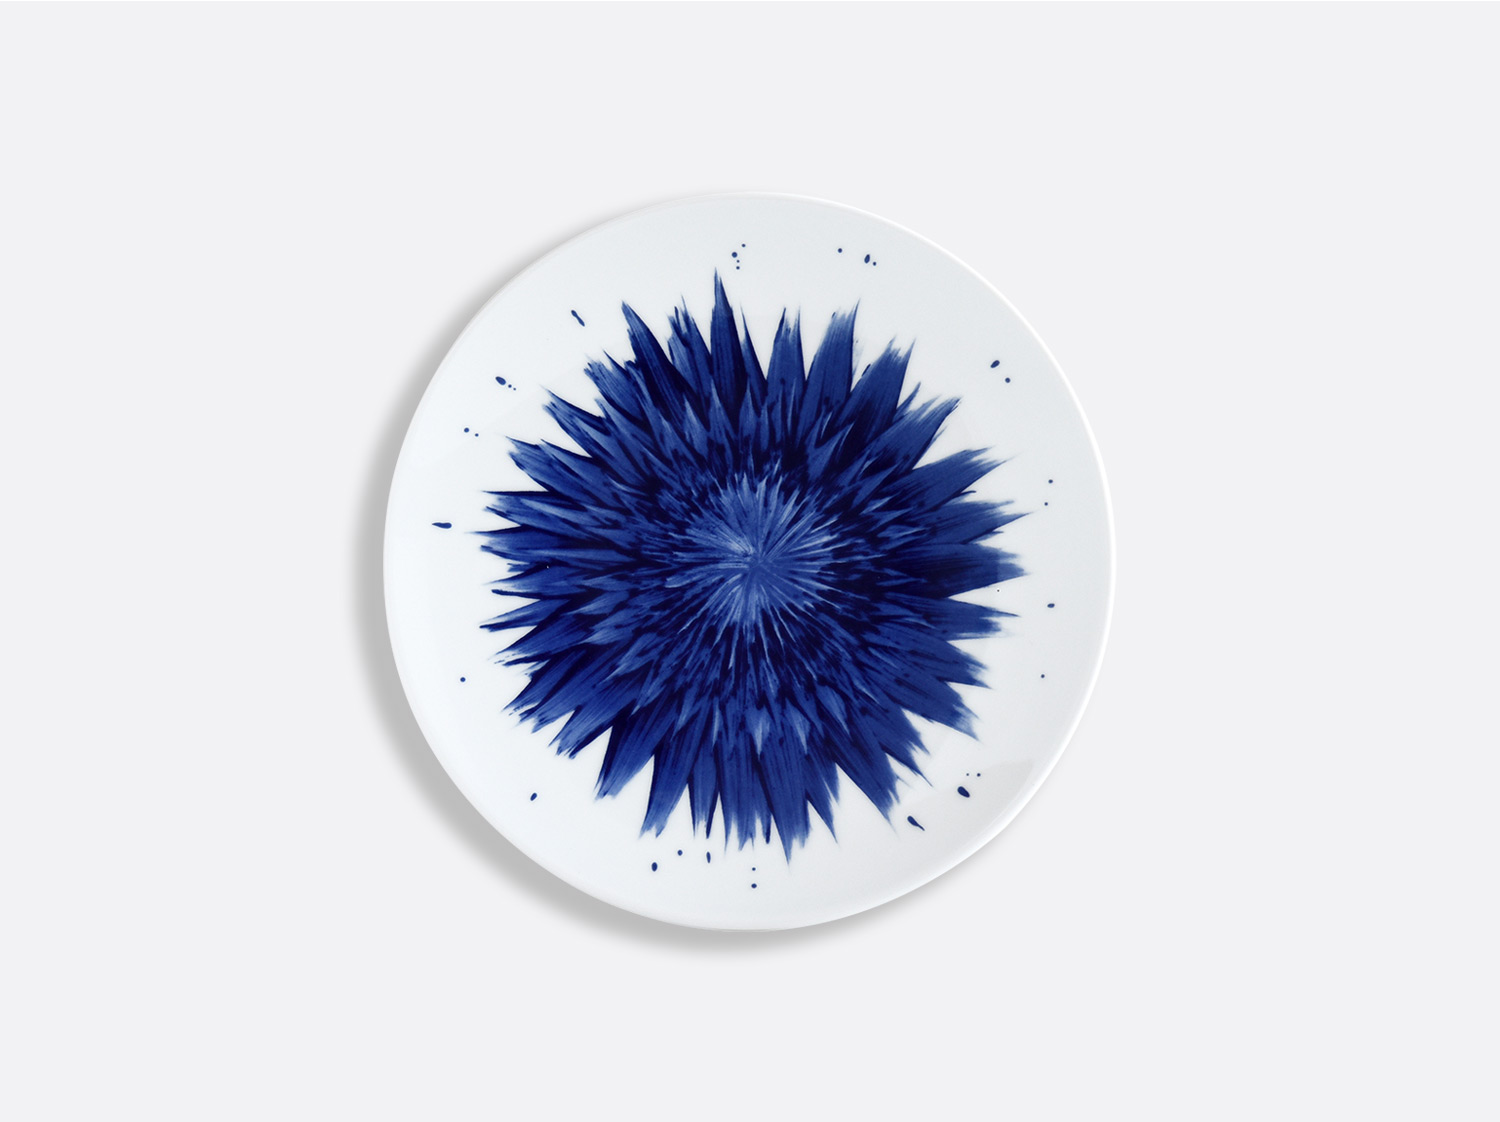 Assiette coupe 16 cm en porcelaine de la collection IN BLOOM - Zemer Peled Bernardaud